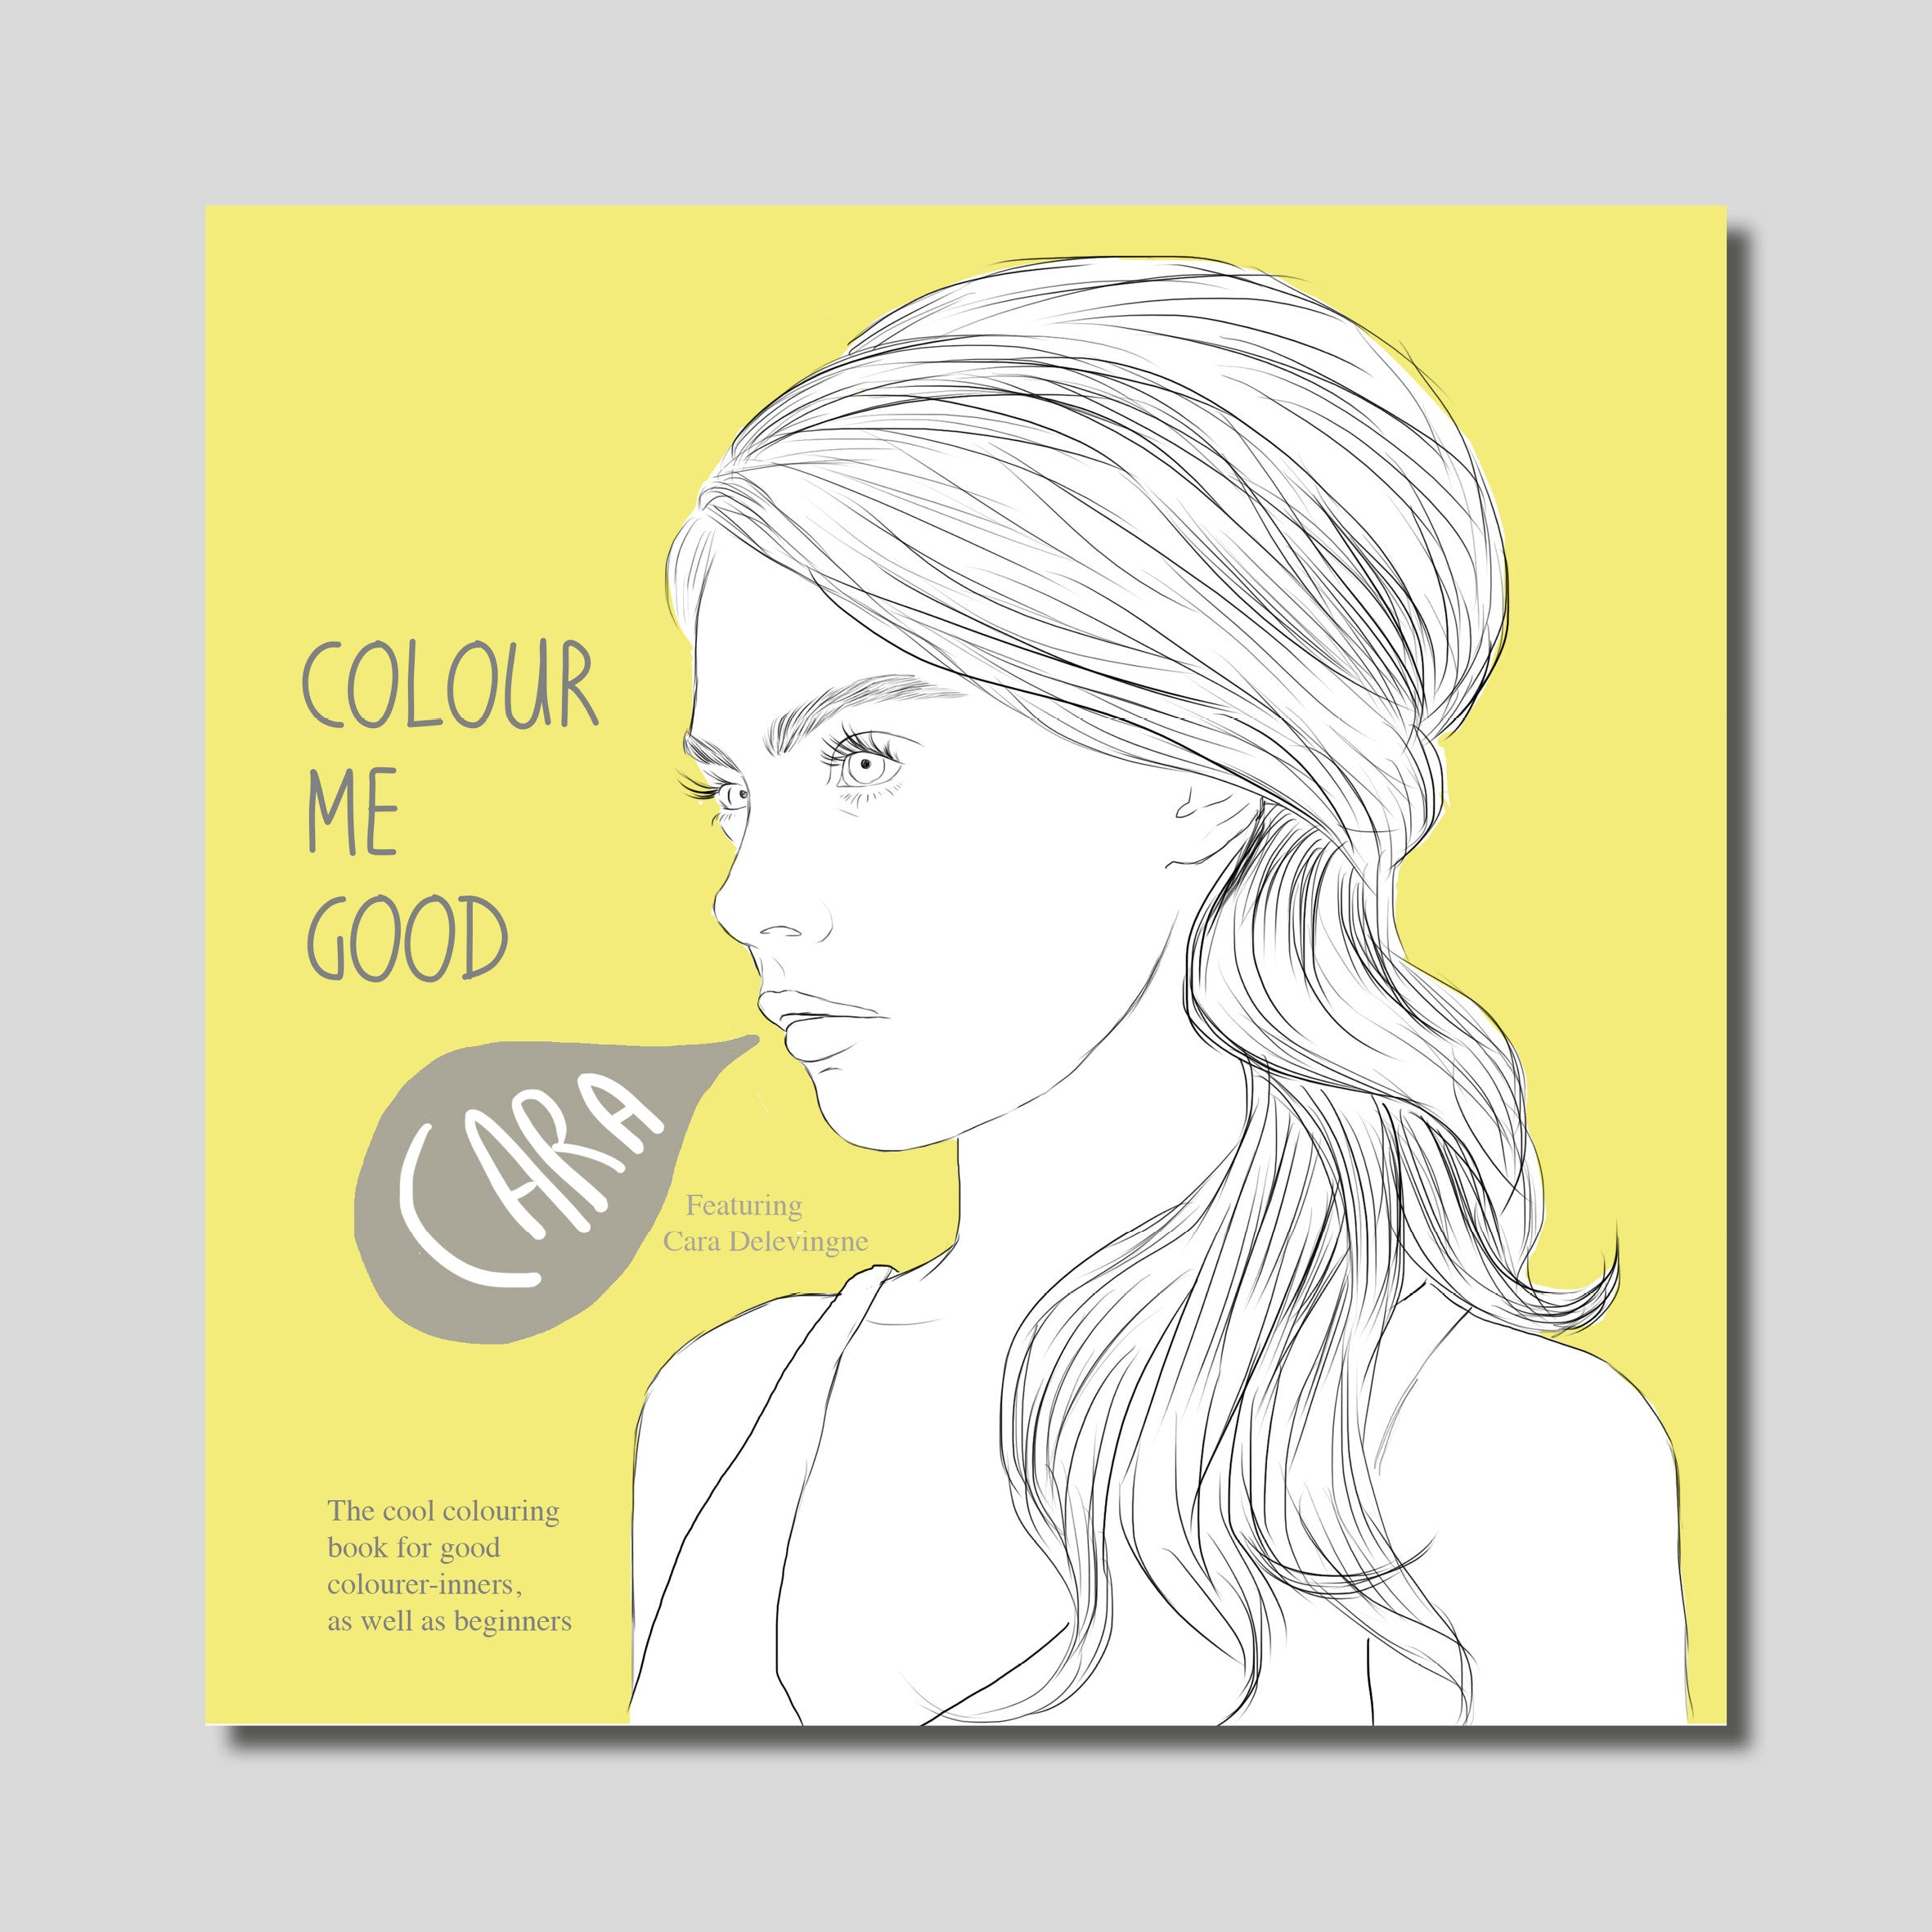 COLOUR ME GOOD CARA colouring book